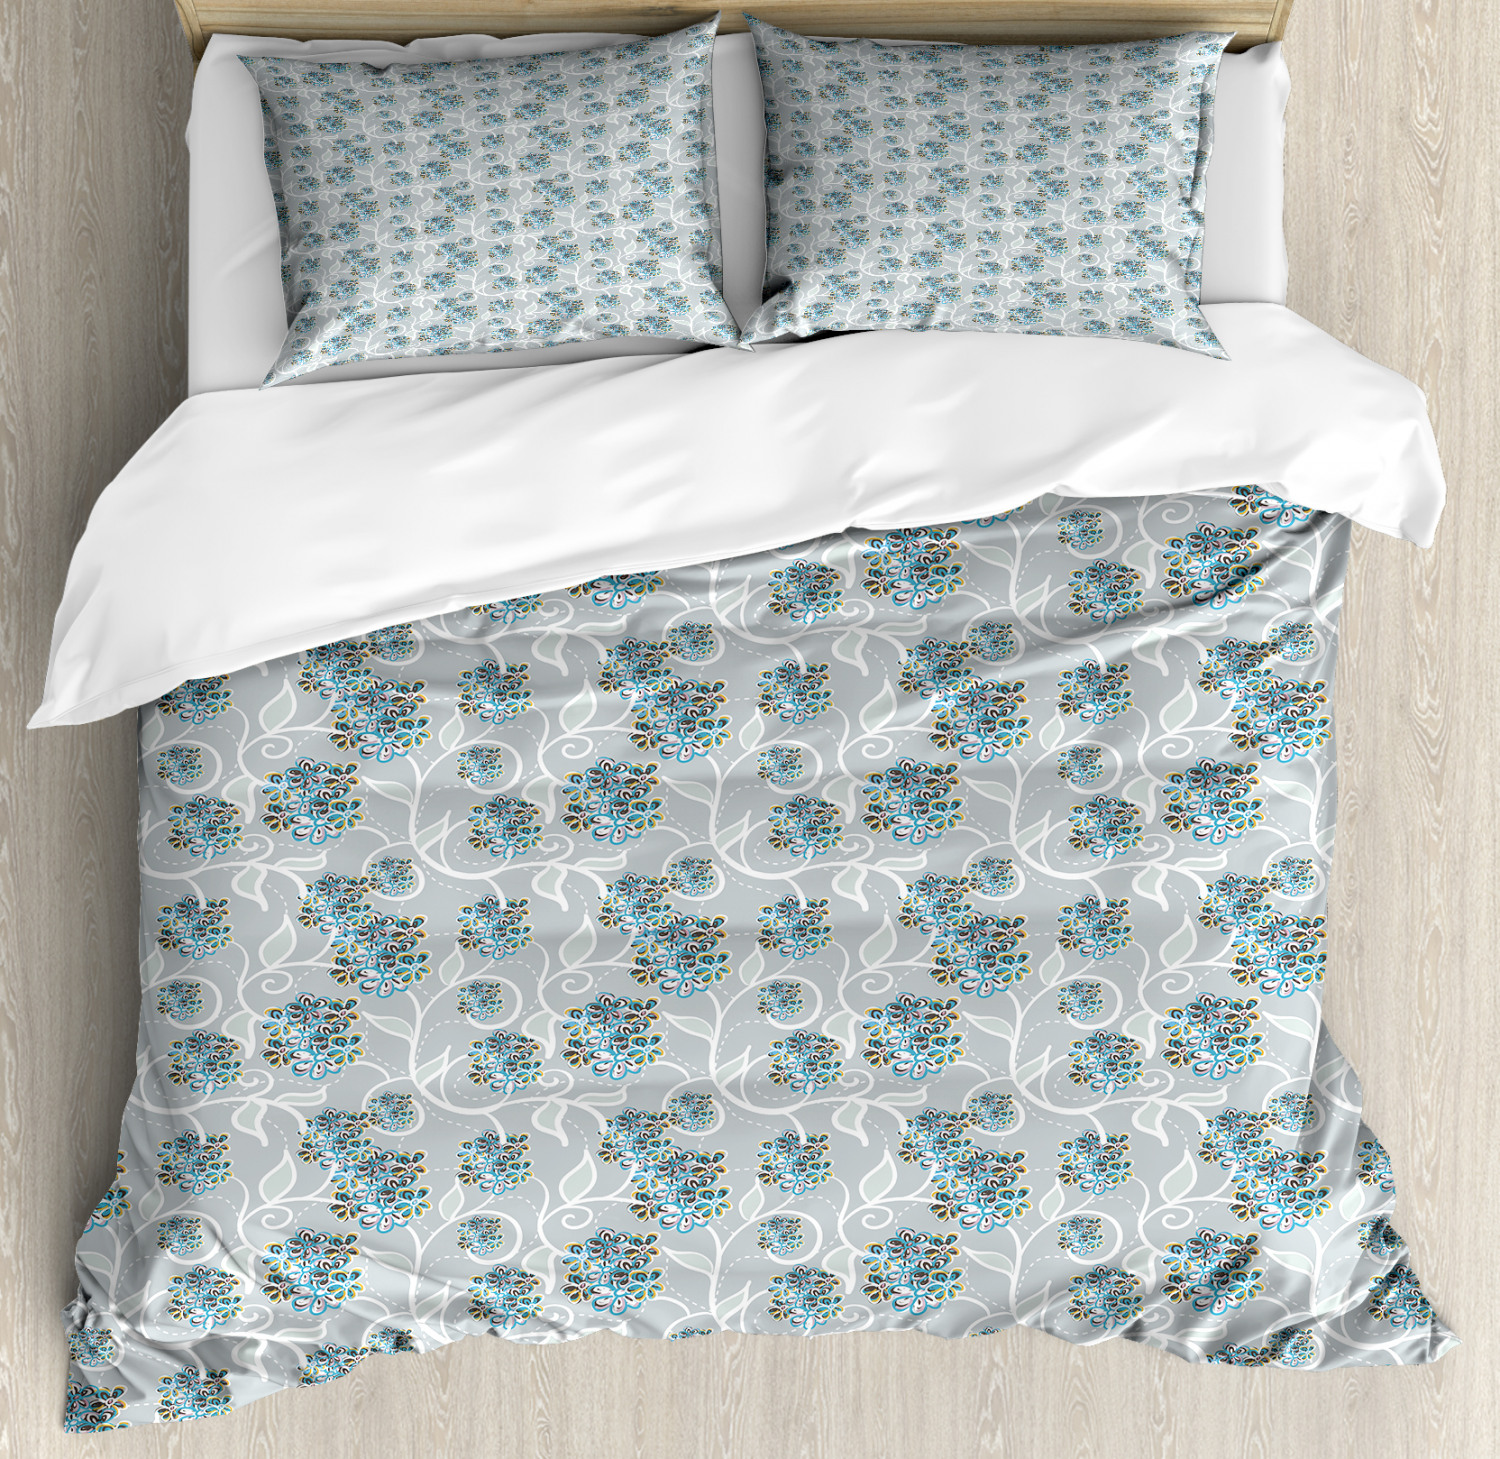 Duvet Cos.Details About Abstract Duvet Cover Set With Pillow Shams Lilac Doodle Leaves Print